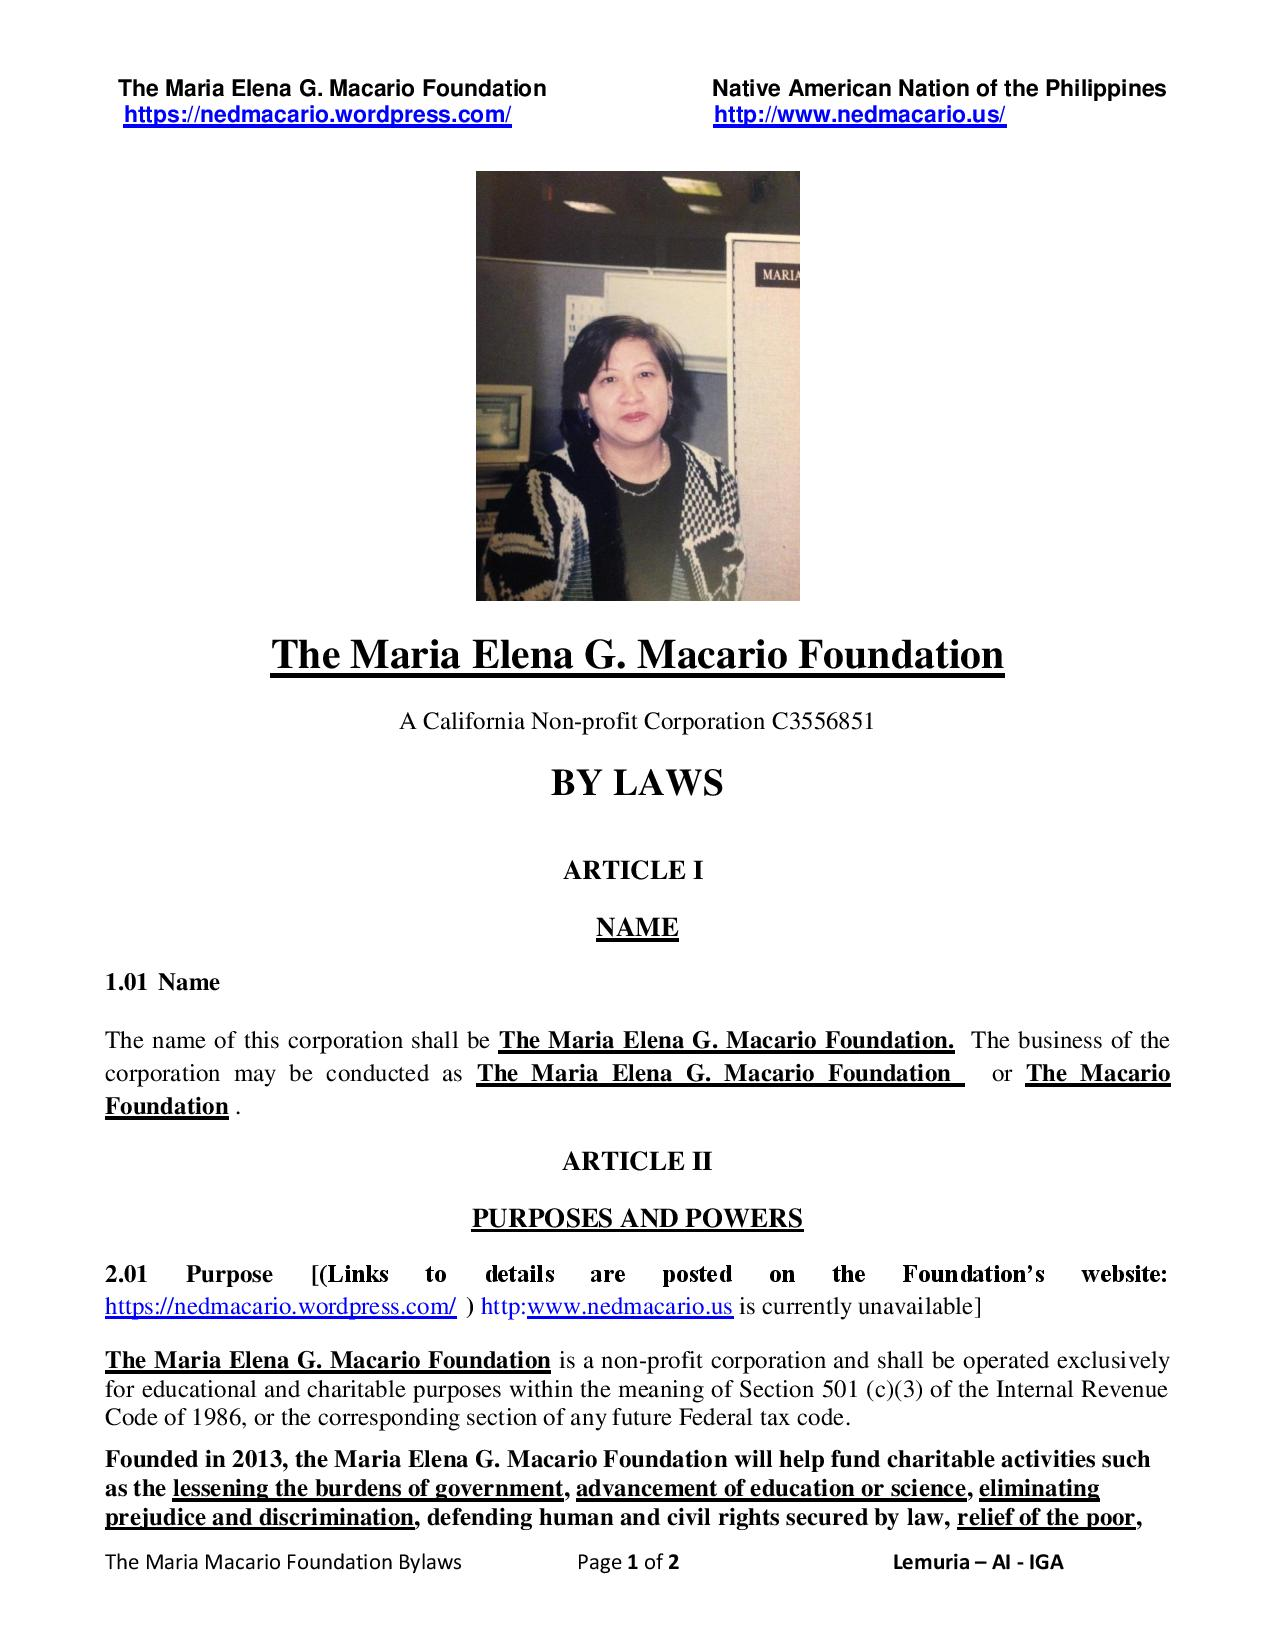 The Maria Macario Foundation Bylaws - 1st two pages - Macario Foundation v. 03-26-2017 p1